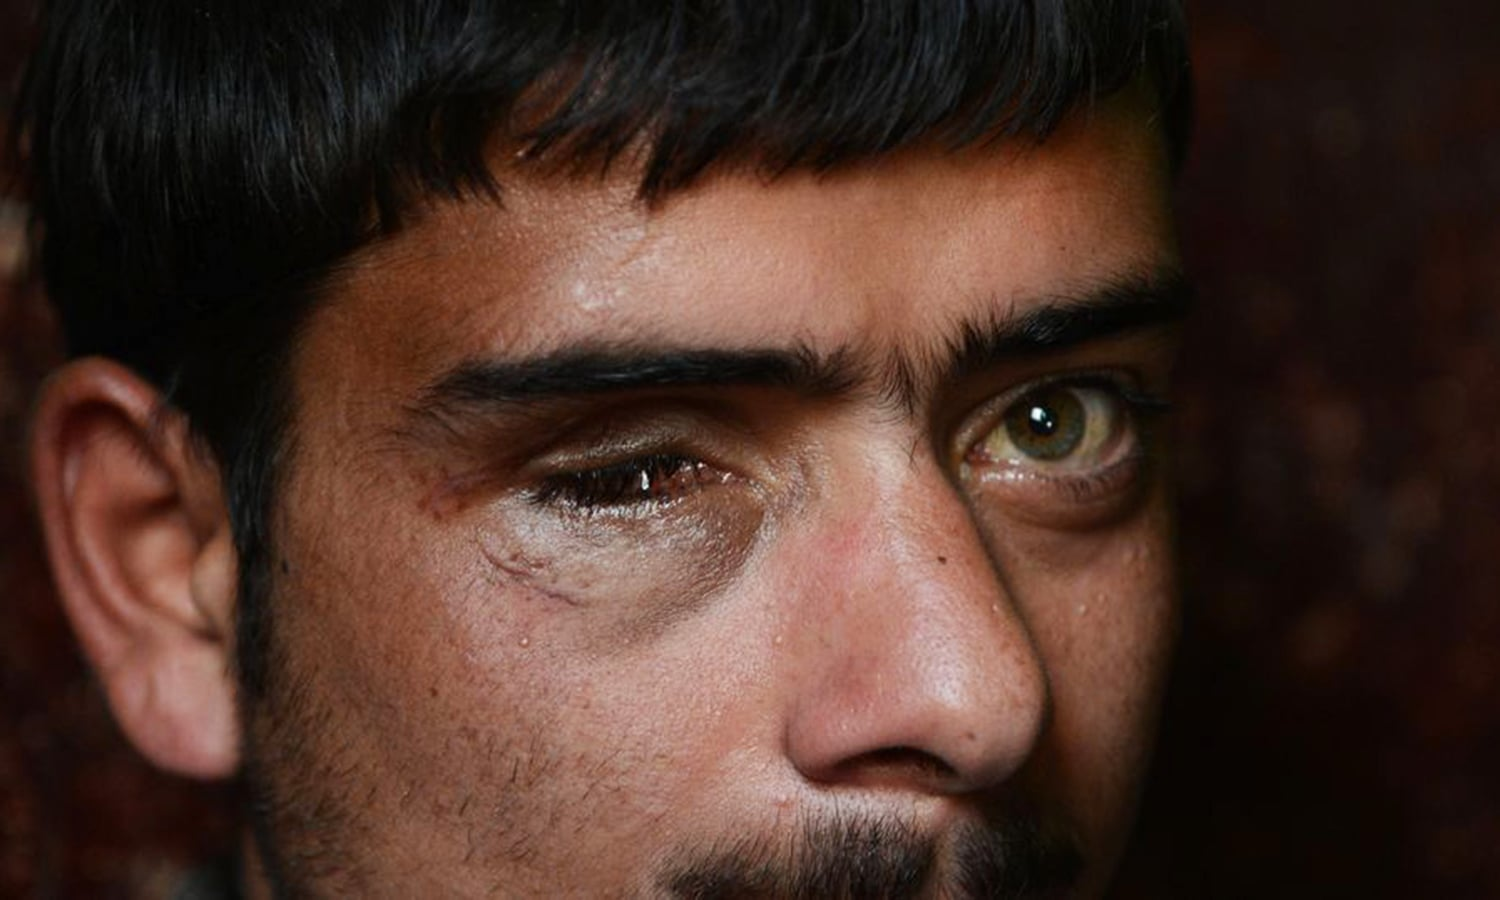 Will the pellet gun victims in Kashmir ever regain their eyesight?